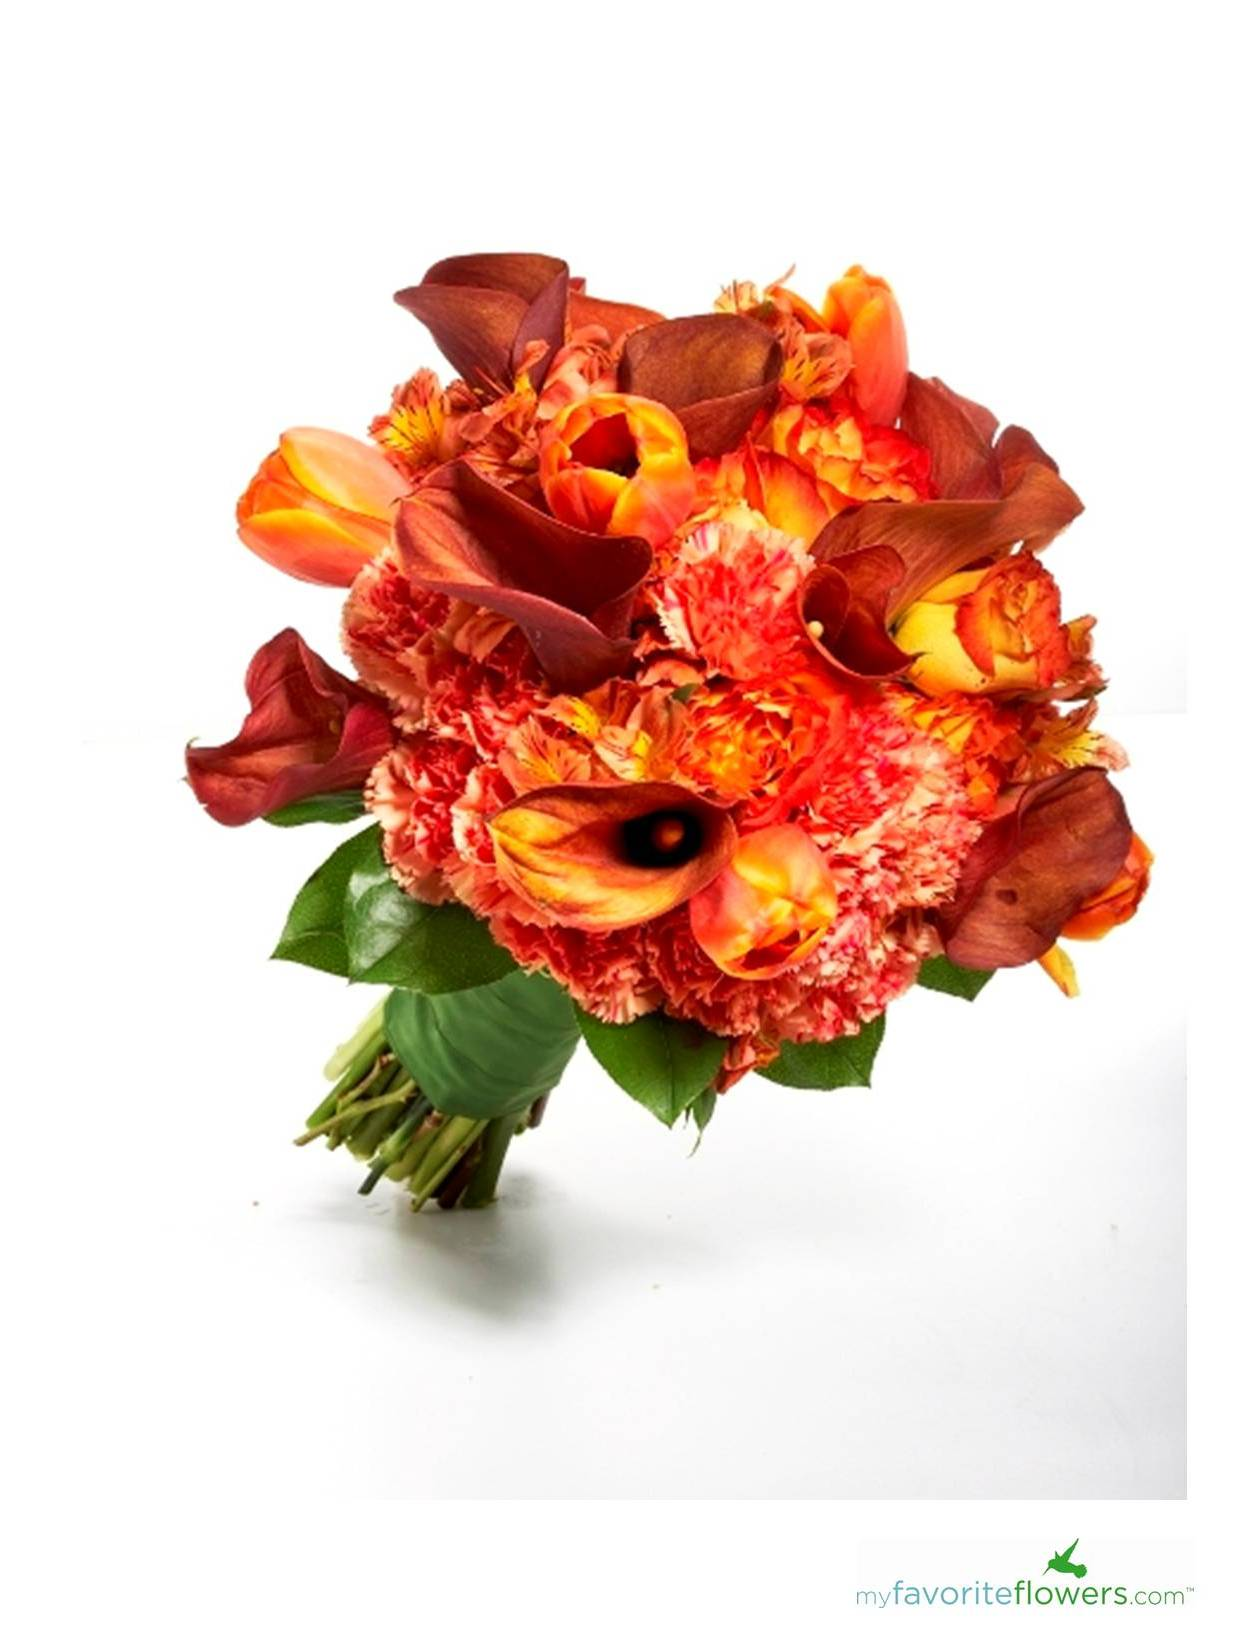 wedding flowers gorgeous fall bridal bouquets fall flowers for weddings Wedding Flowers 6 Gorgeous fall bridal bouquets